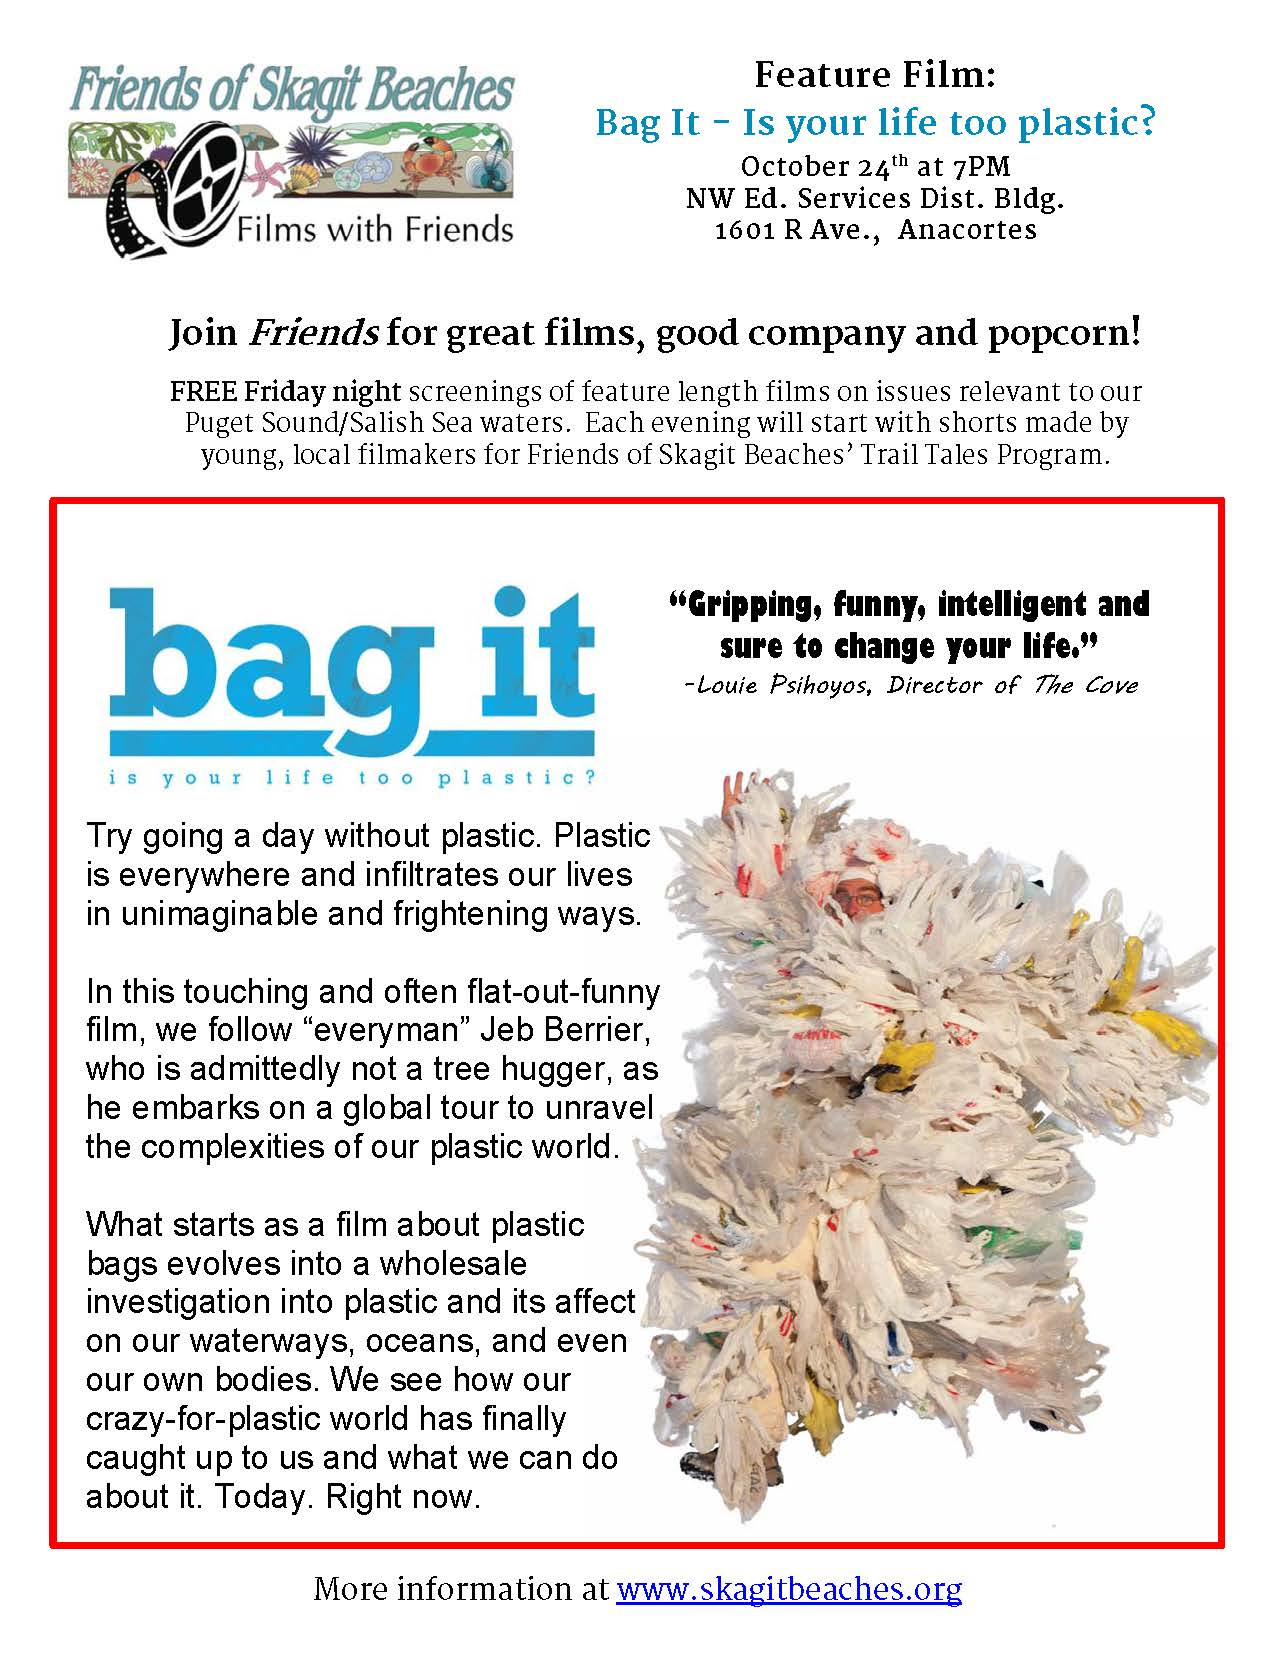 BAG IT - Is your life too plastic?